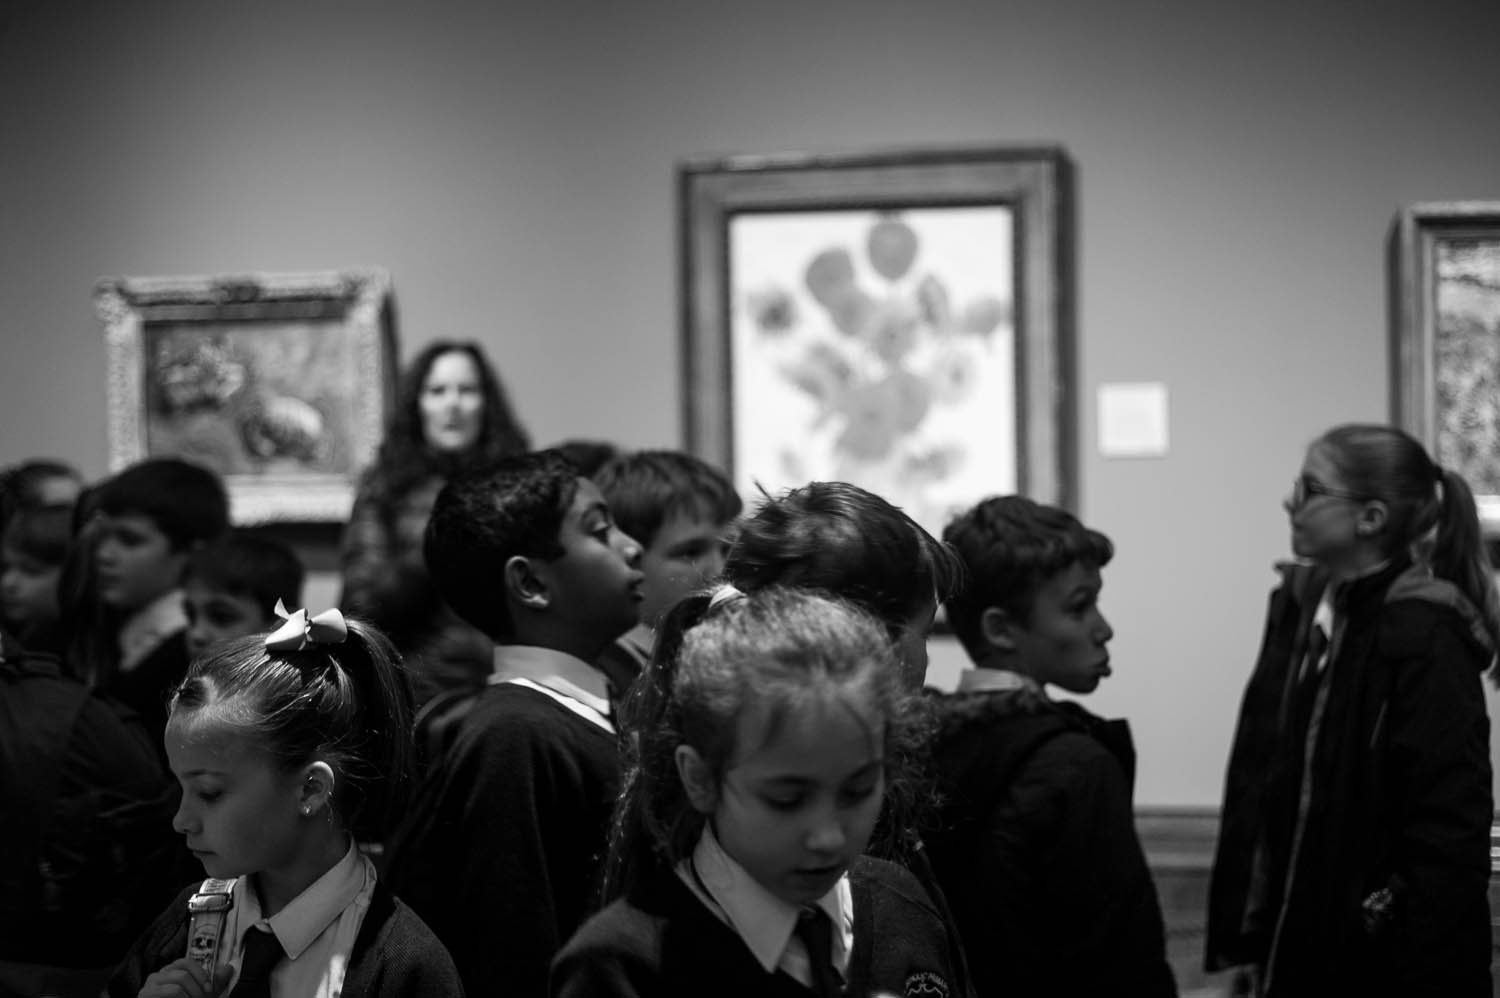 School children gathering around Van Gogh's Sunflowers in London.